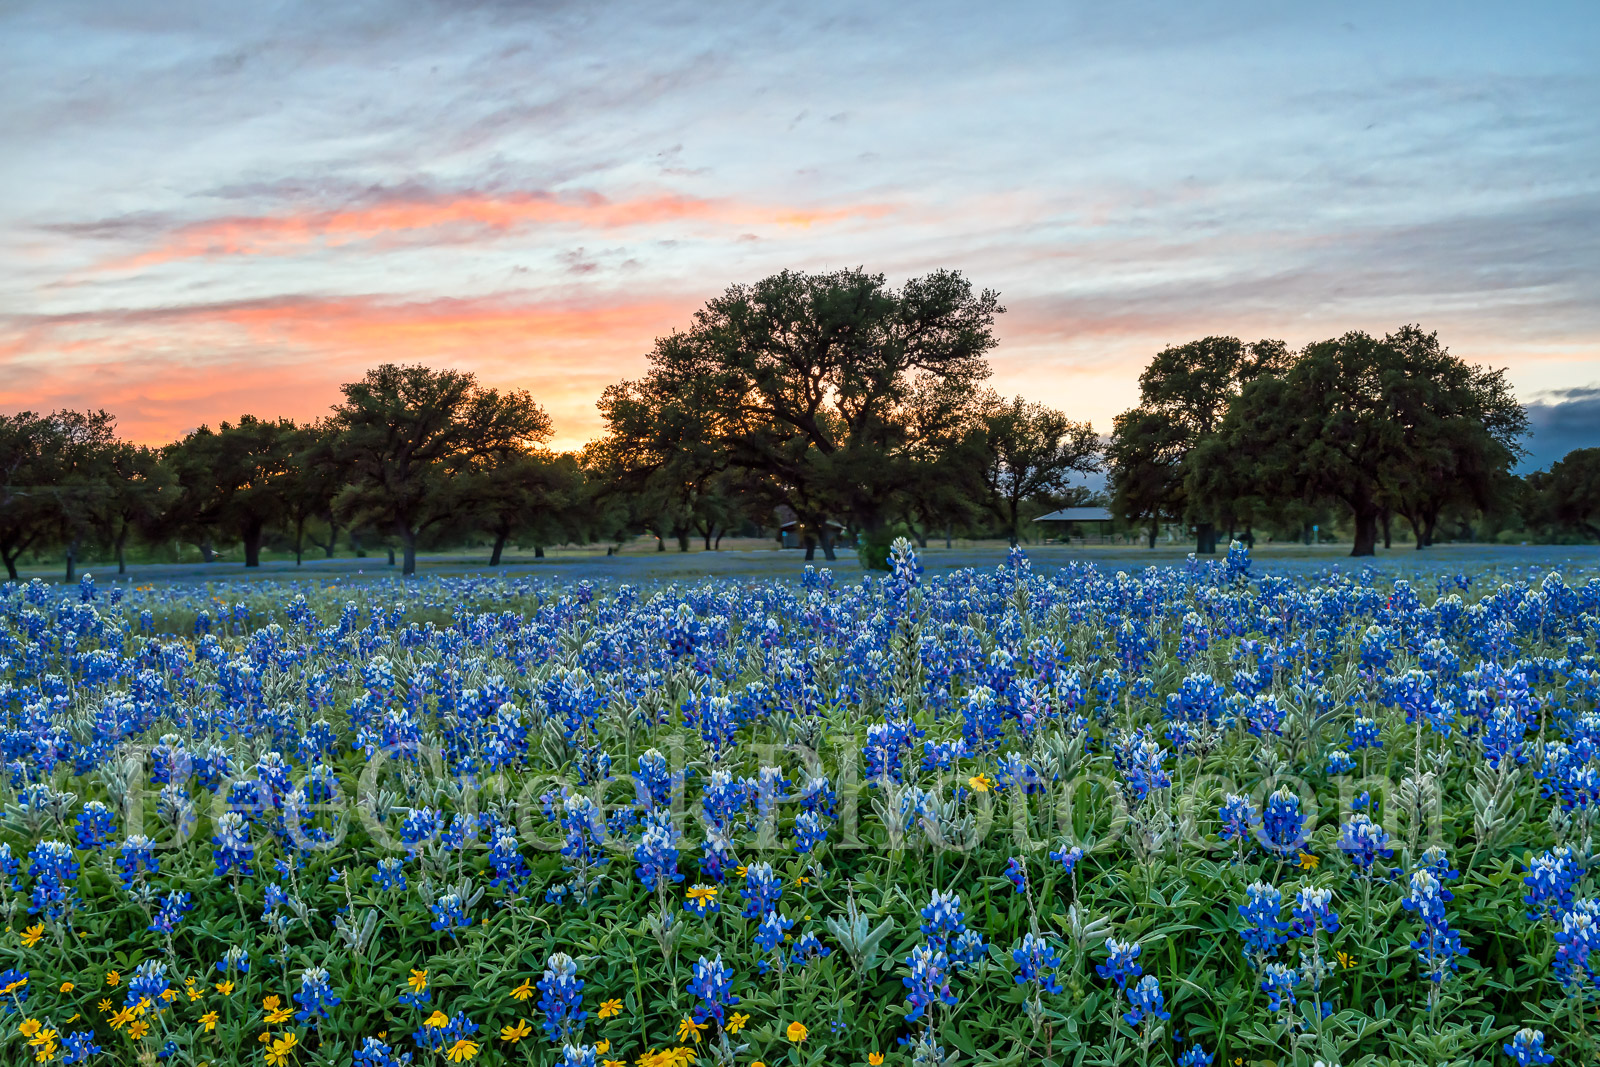 bluebonnets, wildflowers, texas hill country, sunset, dusk, colorful sky, landscape, rural, field of bluebonnets, images of texas, texas landscapes, Texas bluebonnets, texas wildflowers, photo